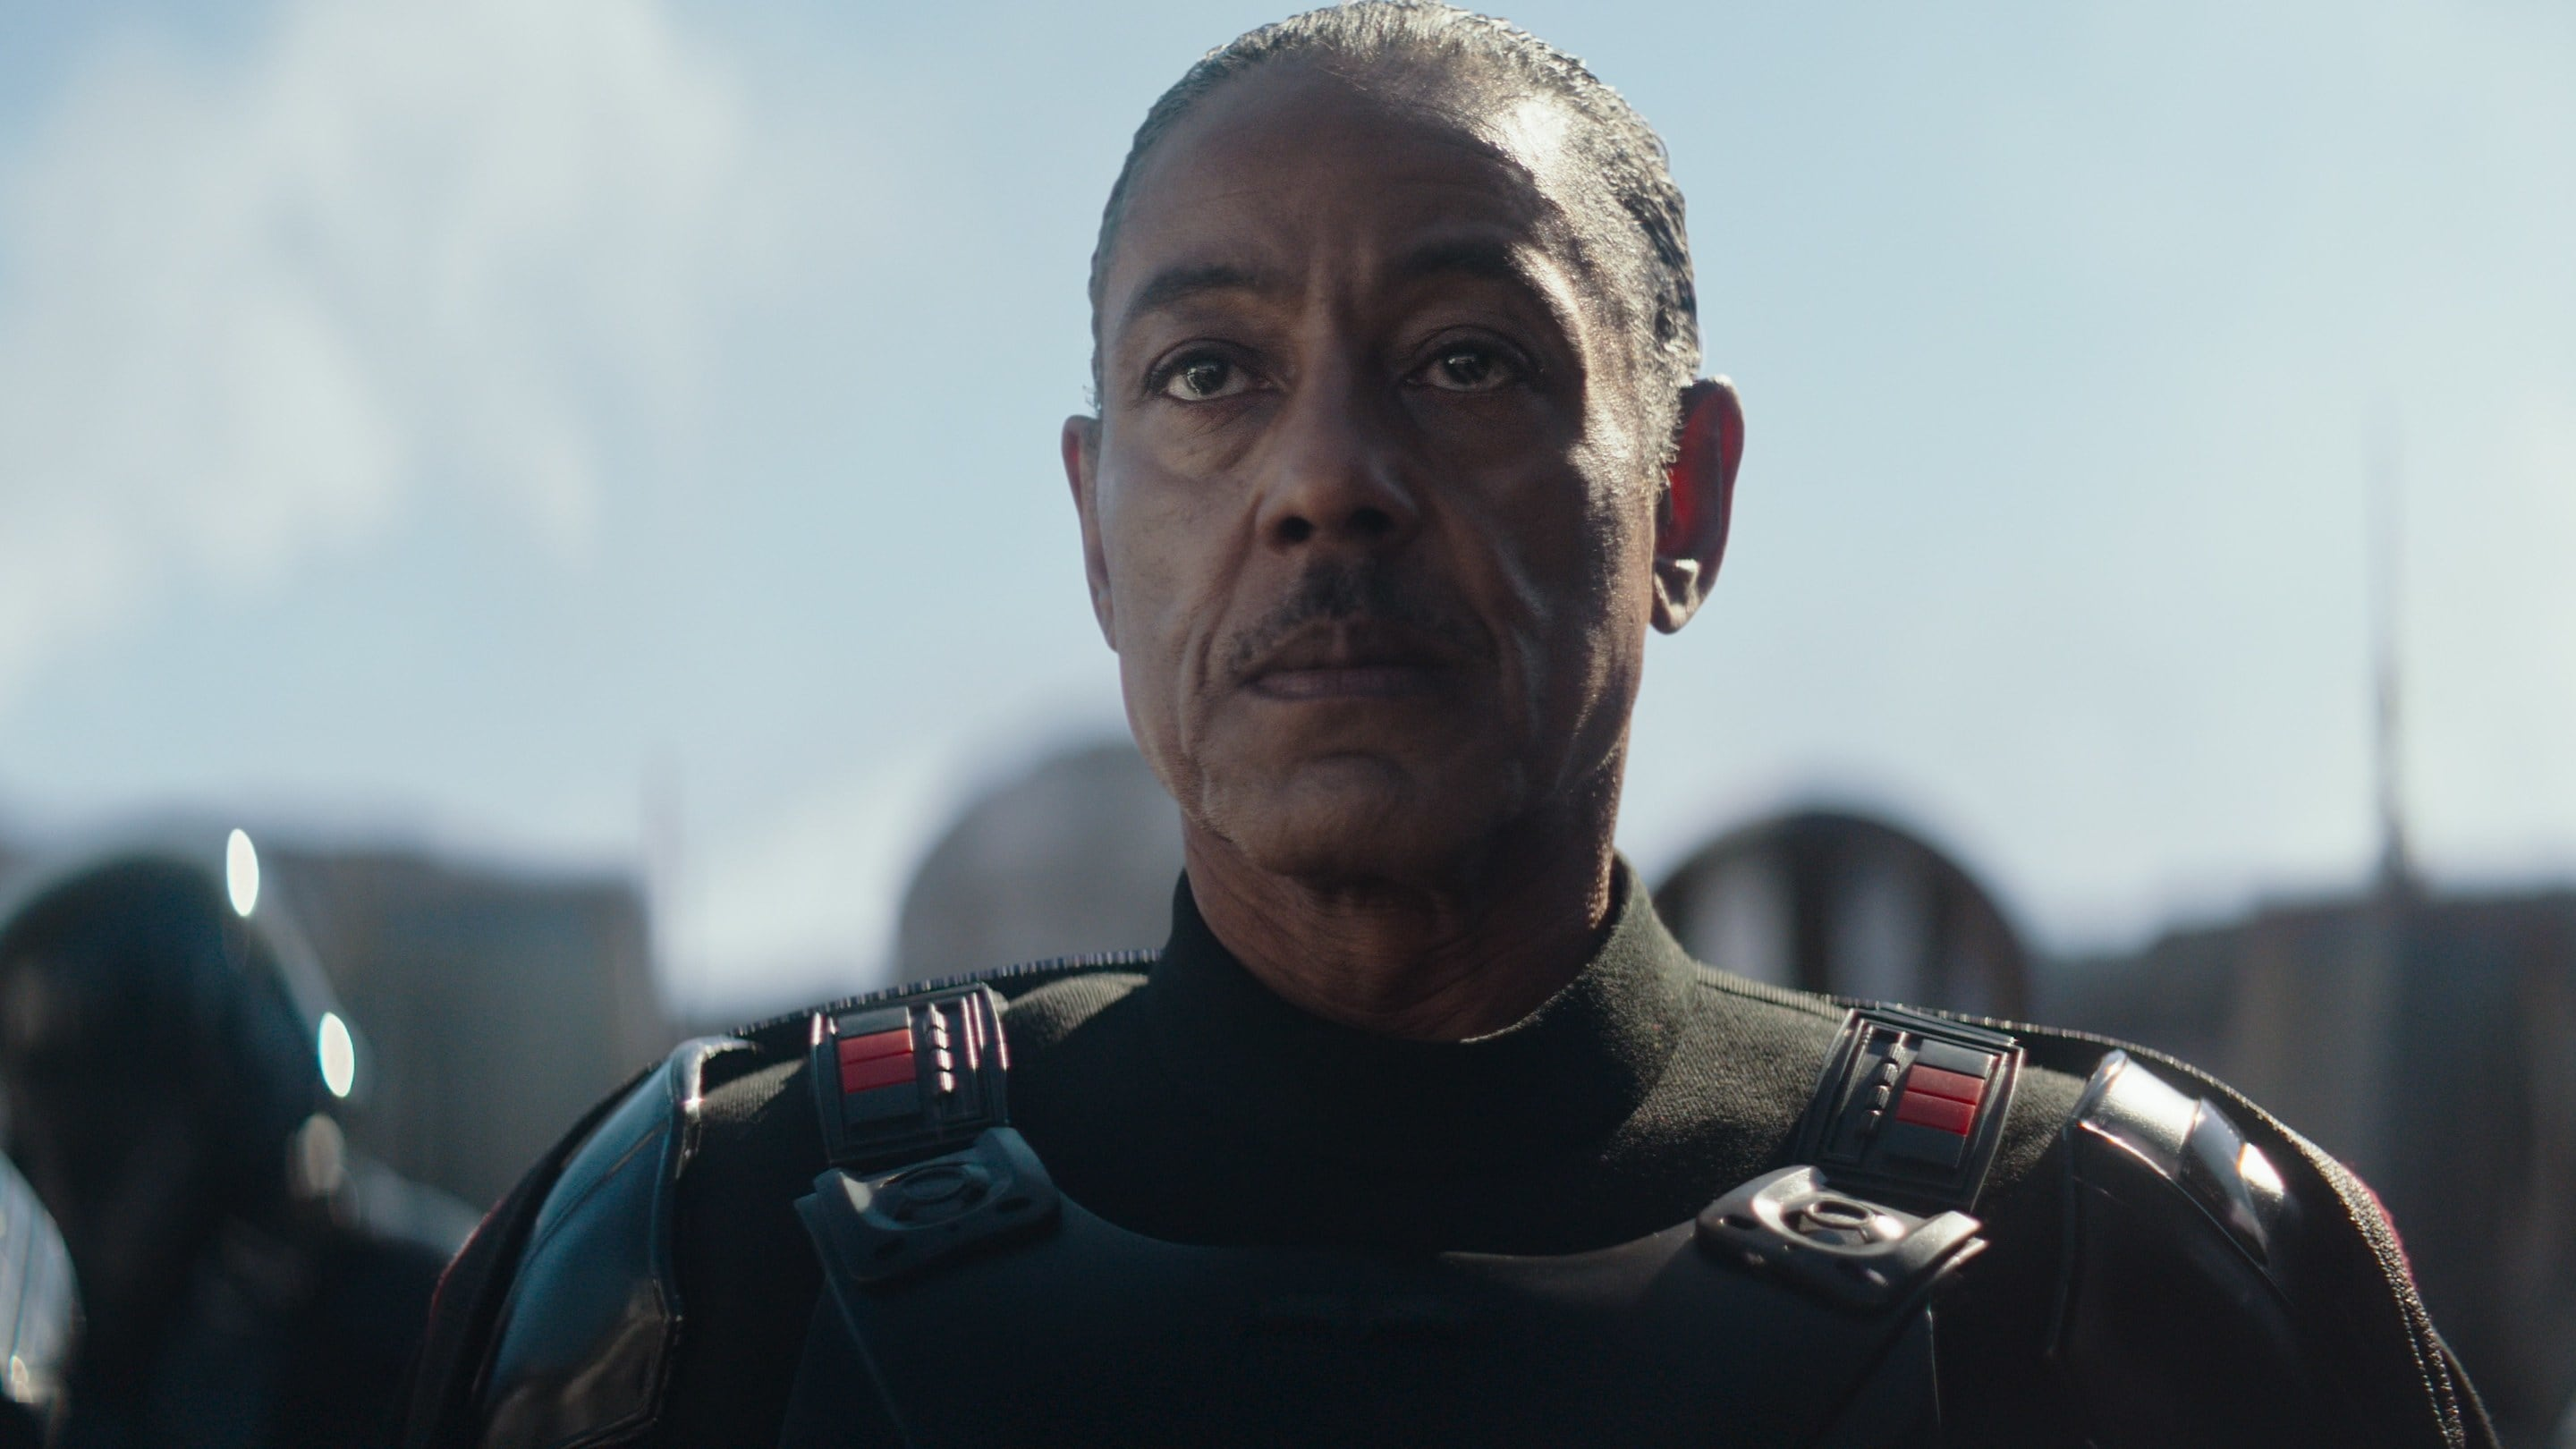 Caption :Giancarlo Esposito is Mof Gideon in the Disney+ series THE MANDALORIAN. Byline :Lucasfilm Ltd. Copyright :(C) 2019 Lucasfilm Ltd. All Rights Reserved.